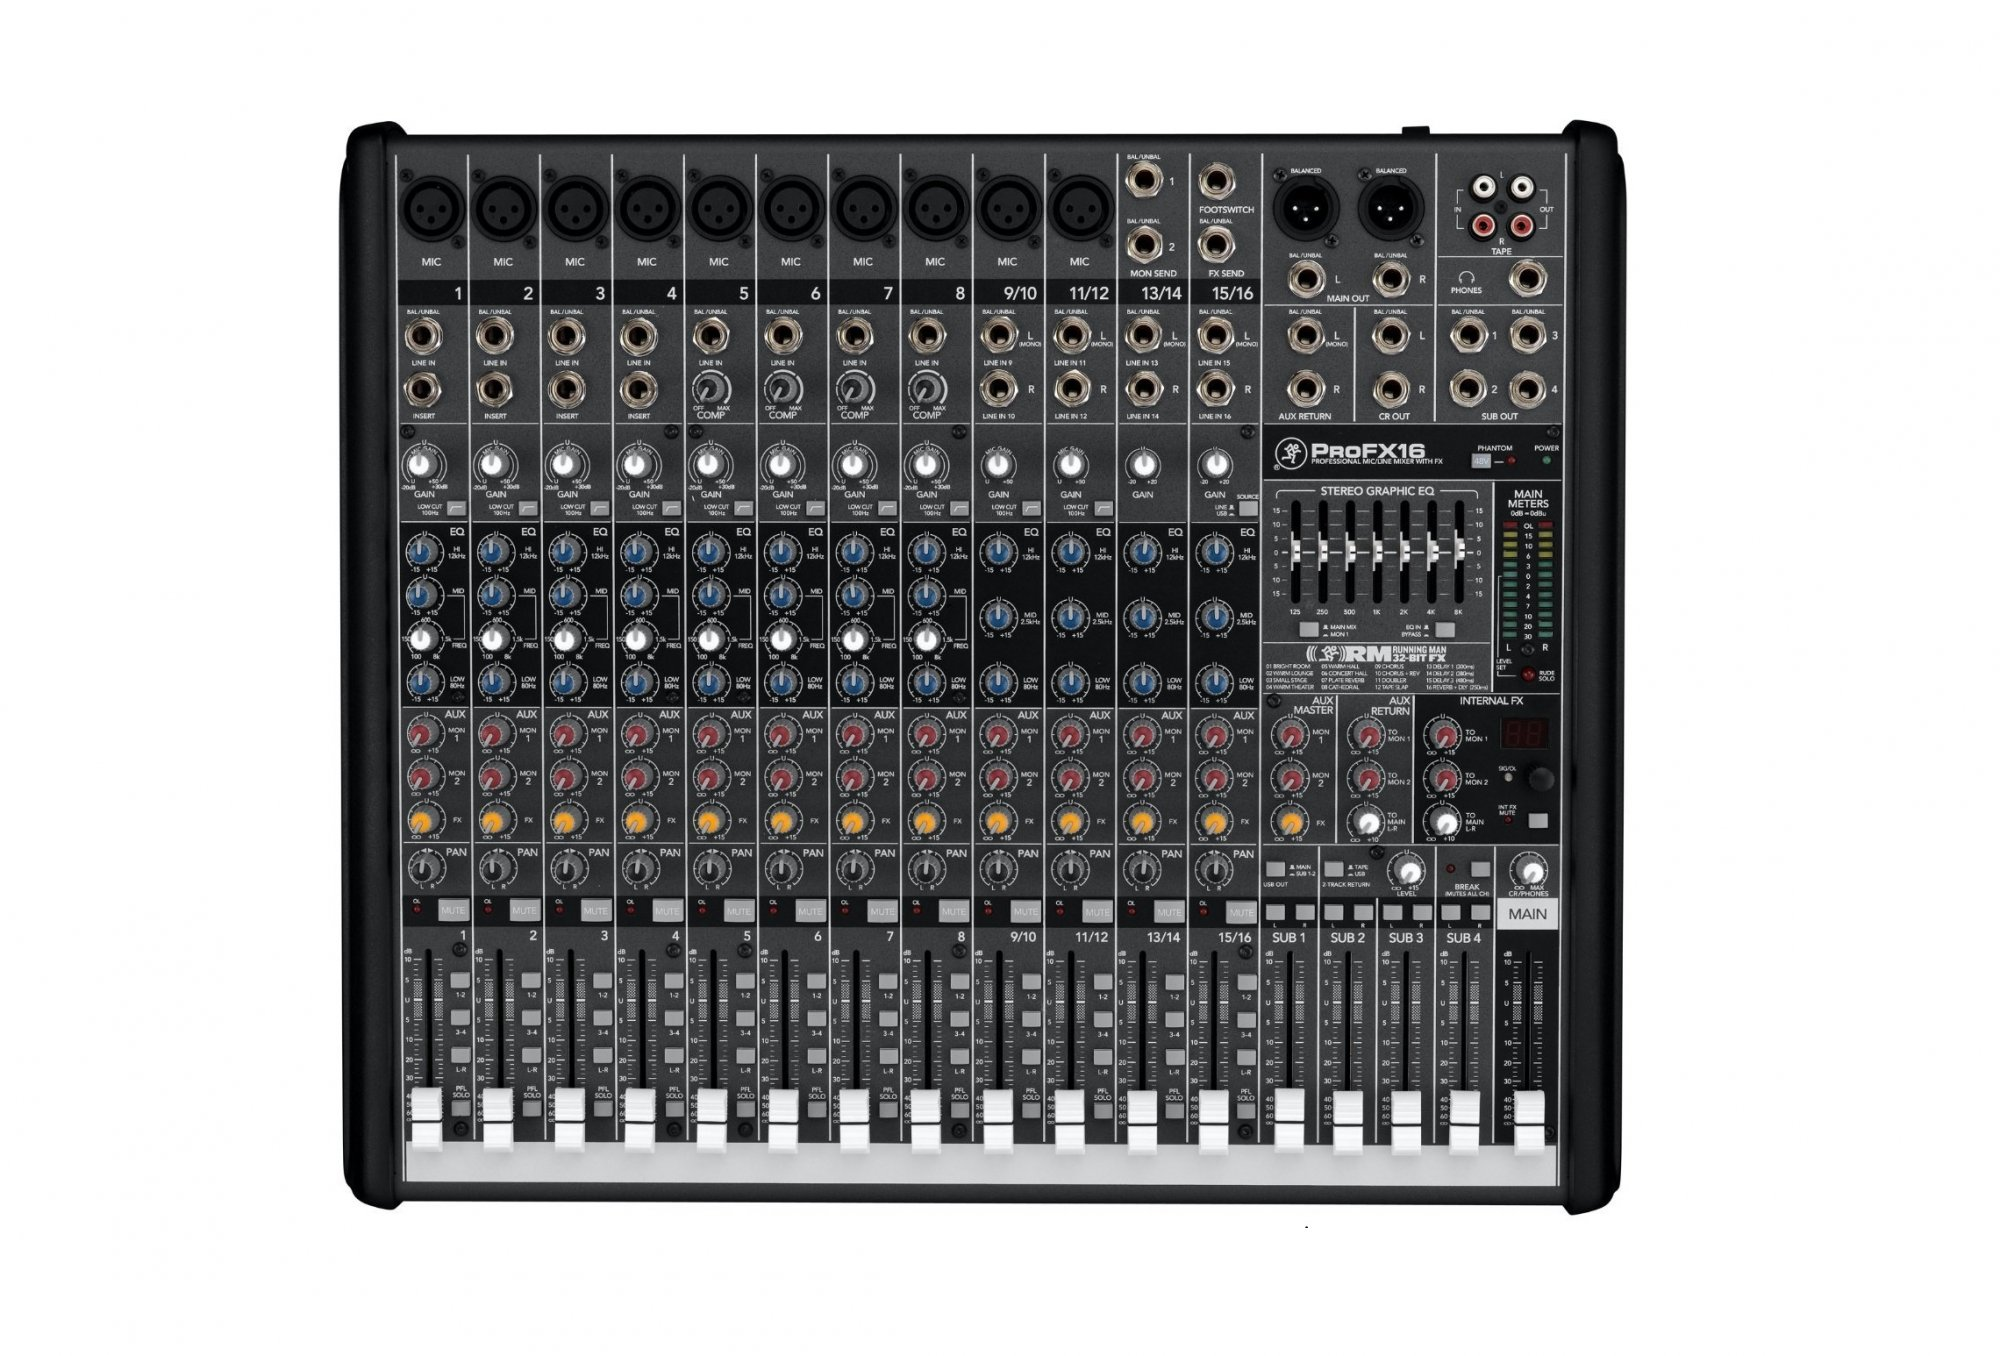 Mackie Pro FX16 Compact Effects Mixer